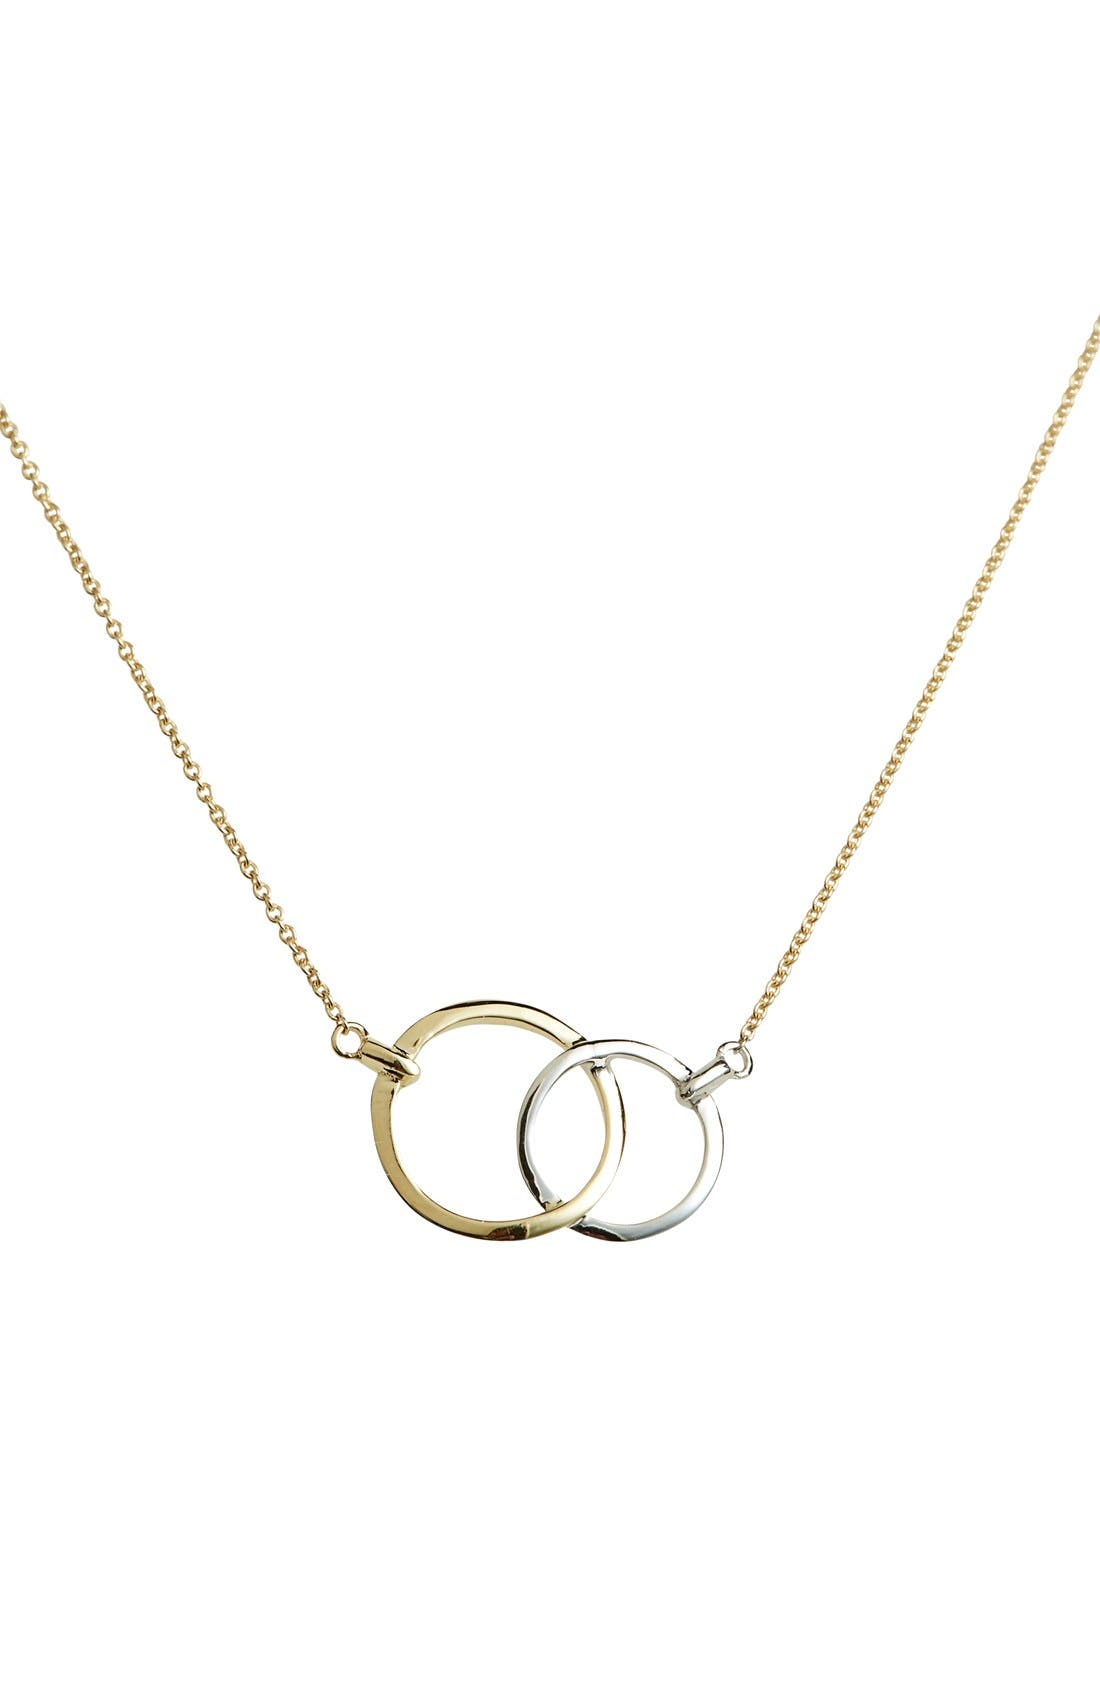 Double Circle Pendant Necklace,                             Main thumbnail 1, color,                             Yellow Gold/ White Gold